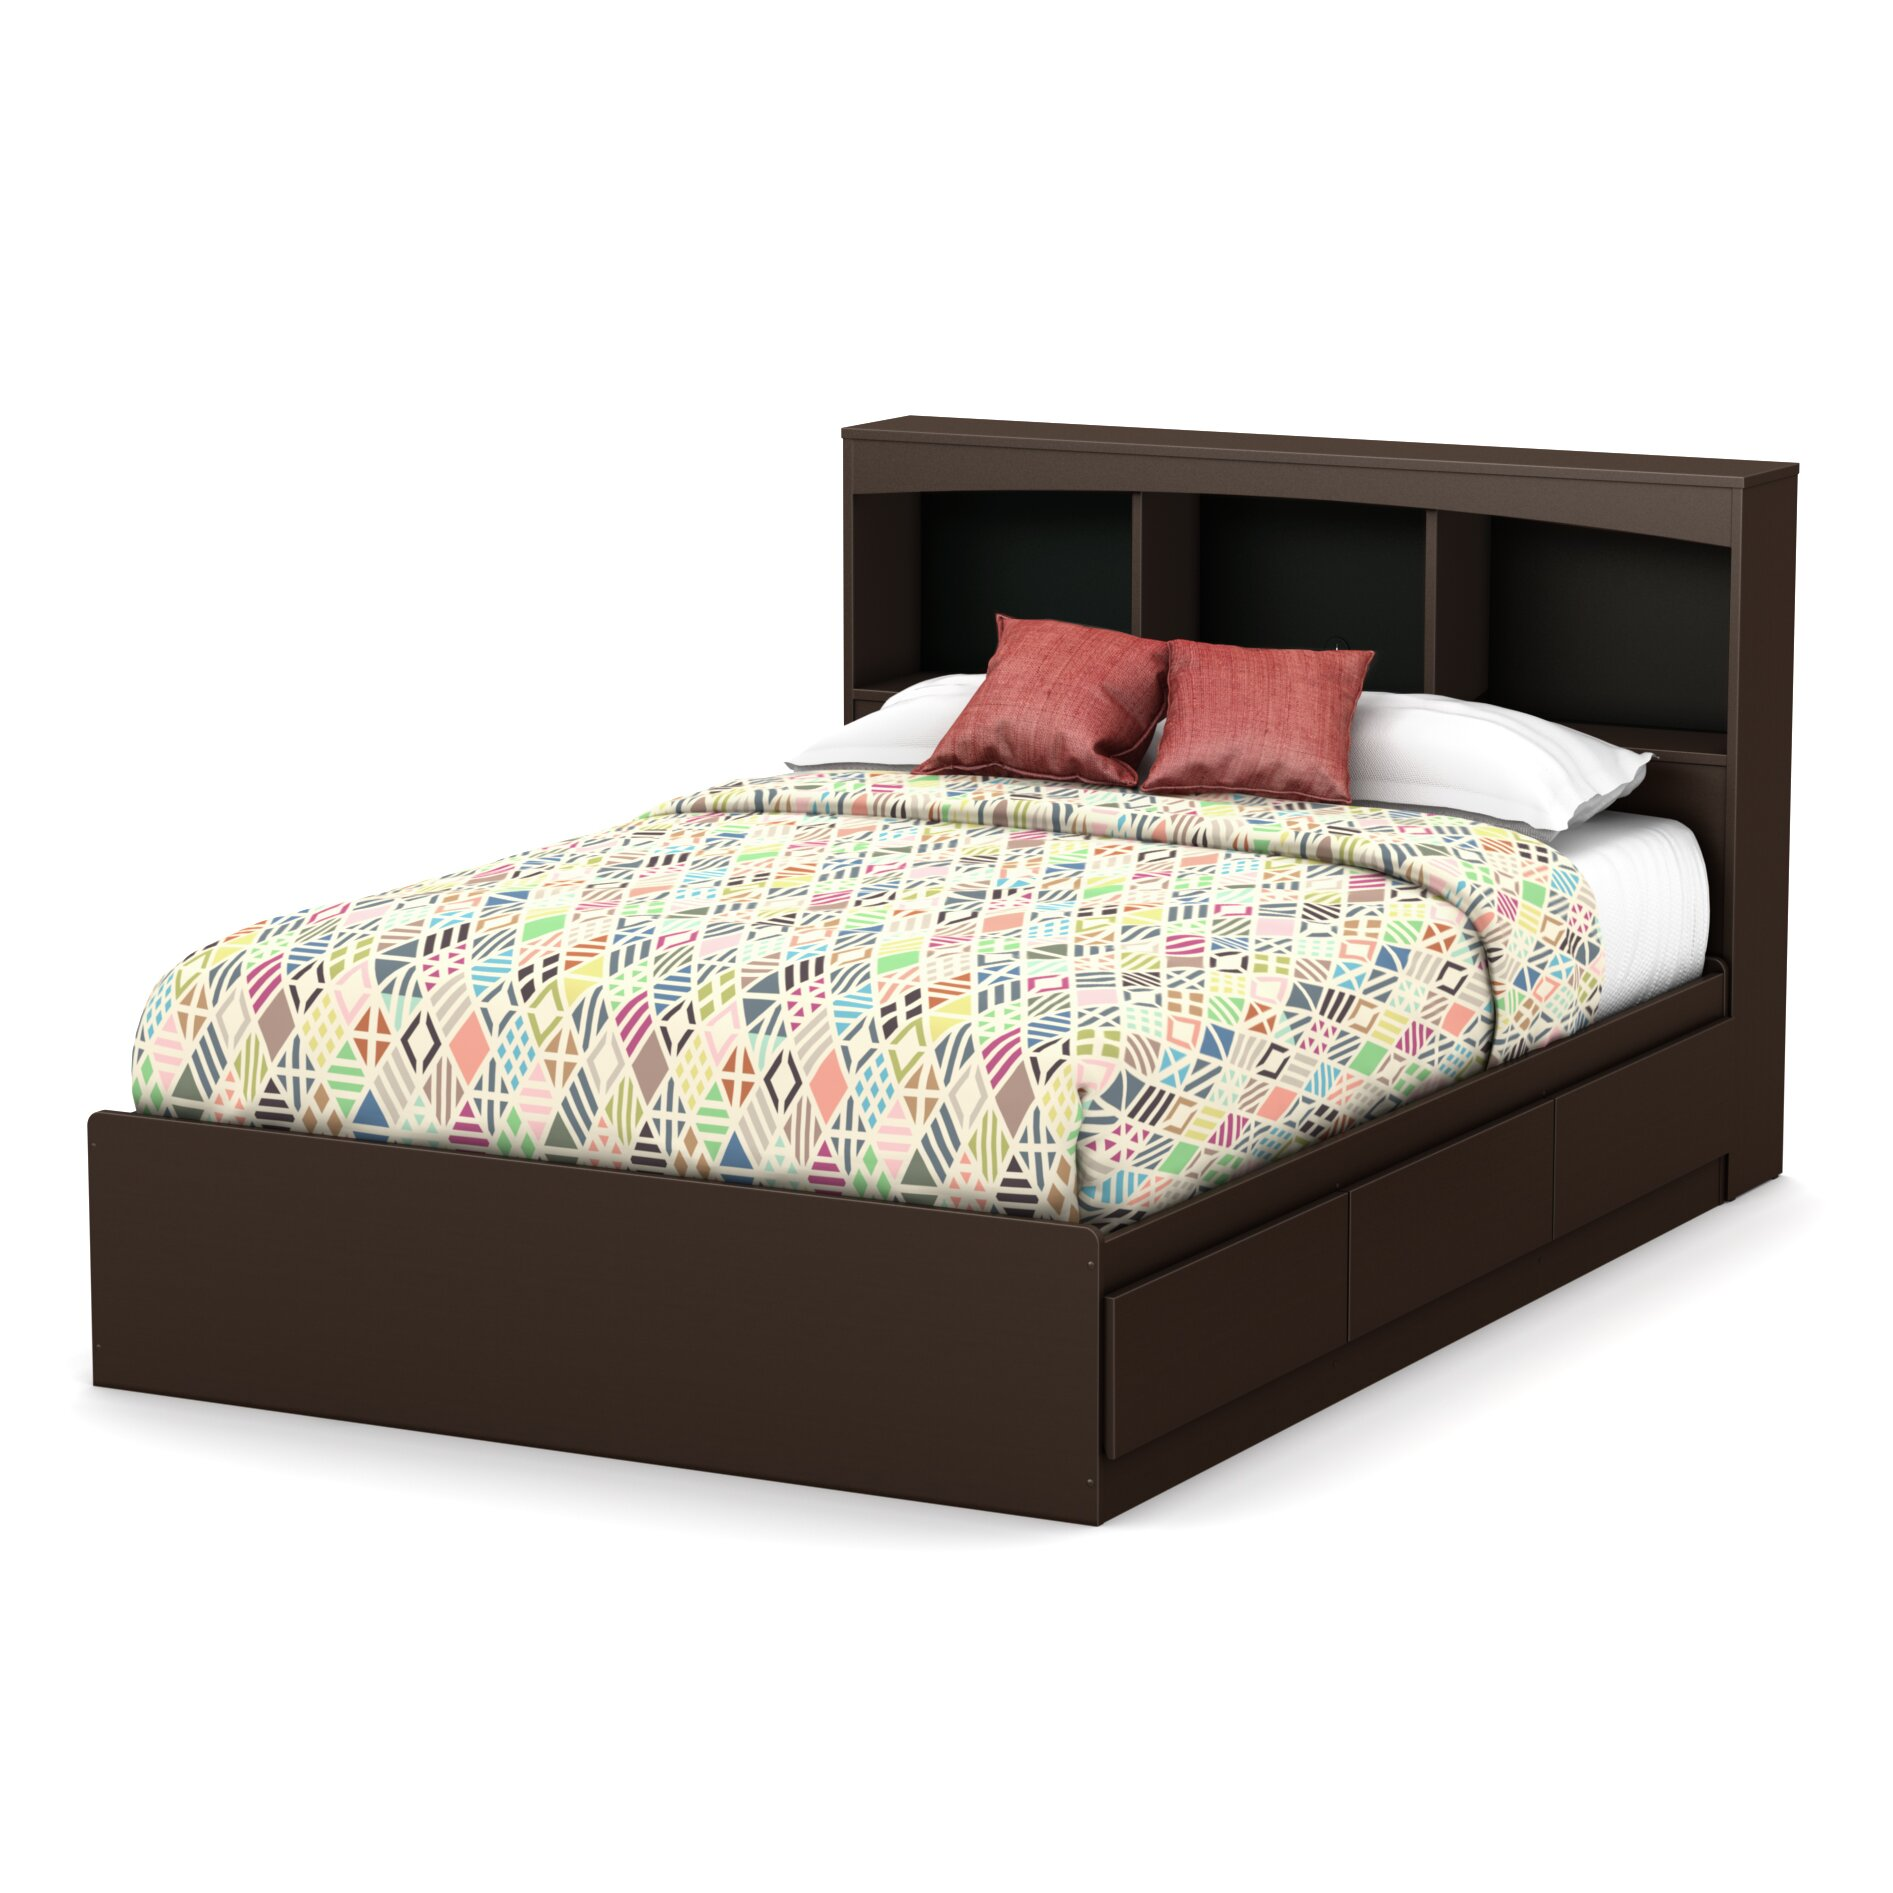 South shore step one full mate 39 s bed with storage for Full size bed frame and dresser